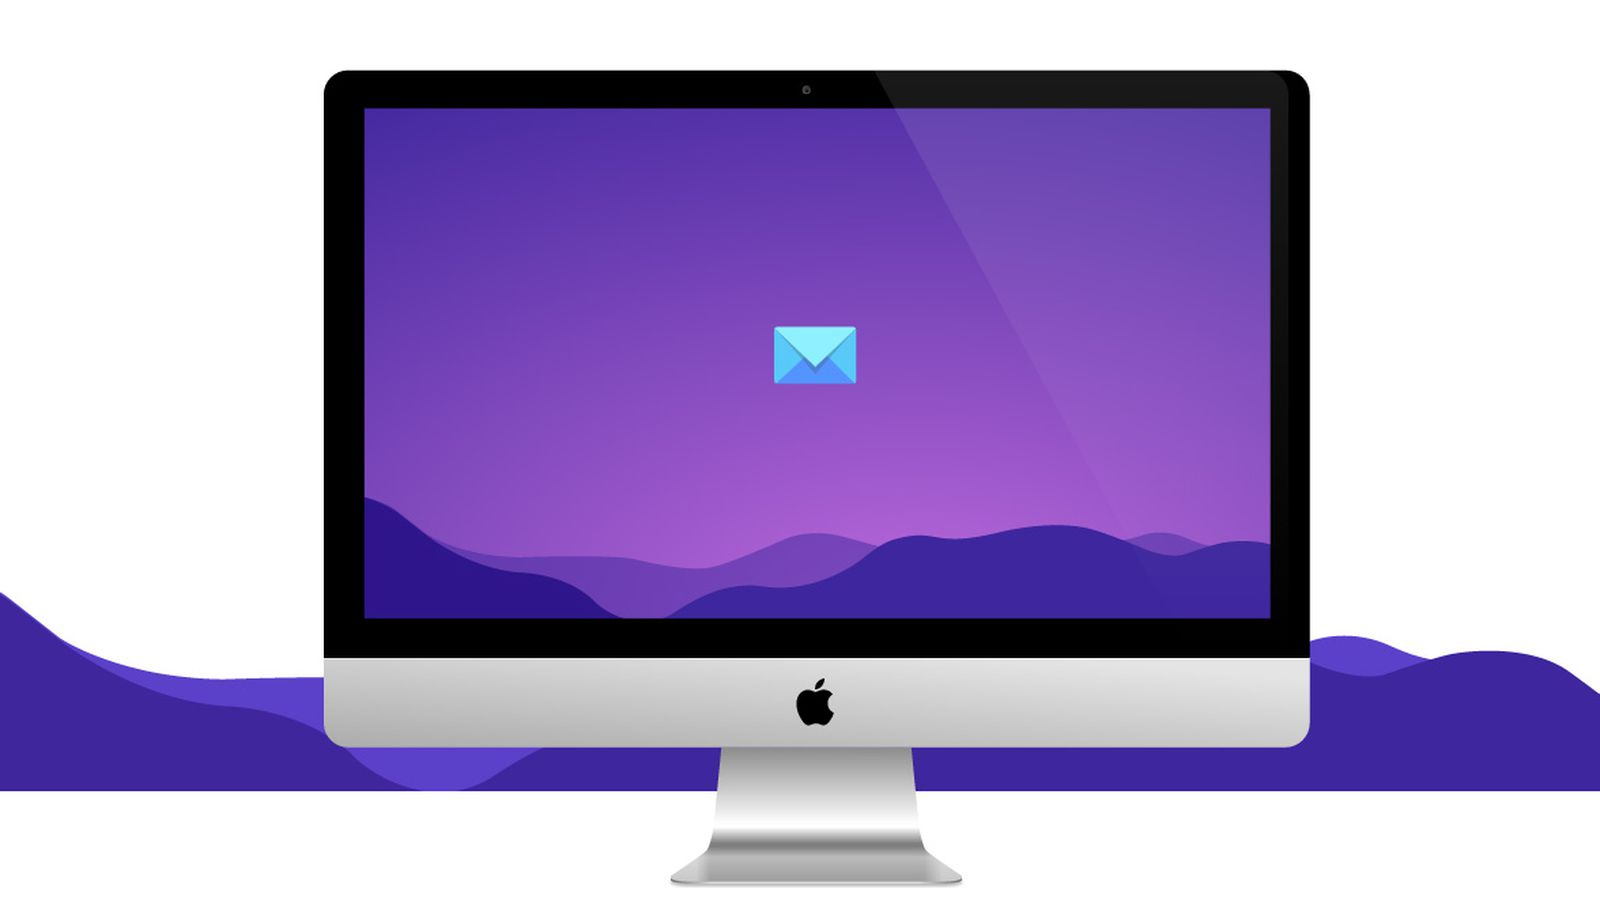 CloudMagic is the Mac email app I've been waiting for ...